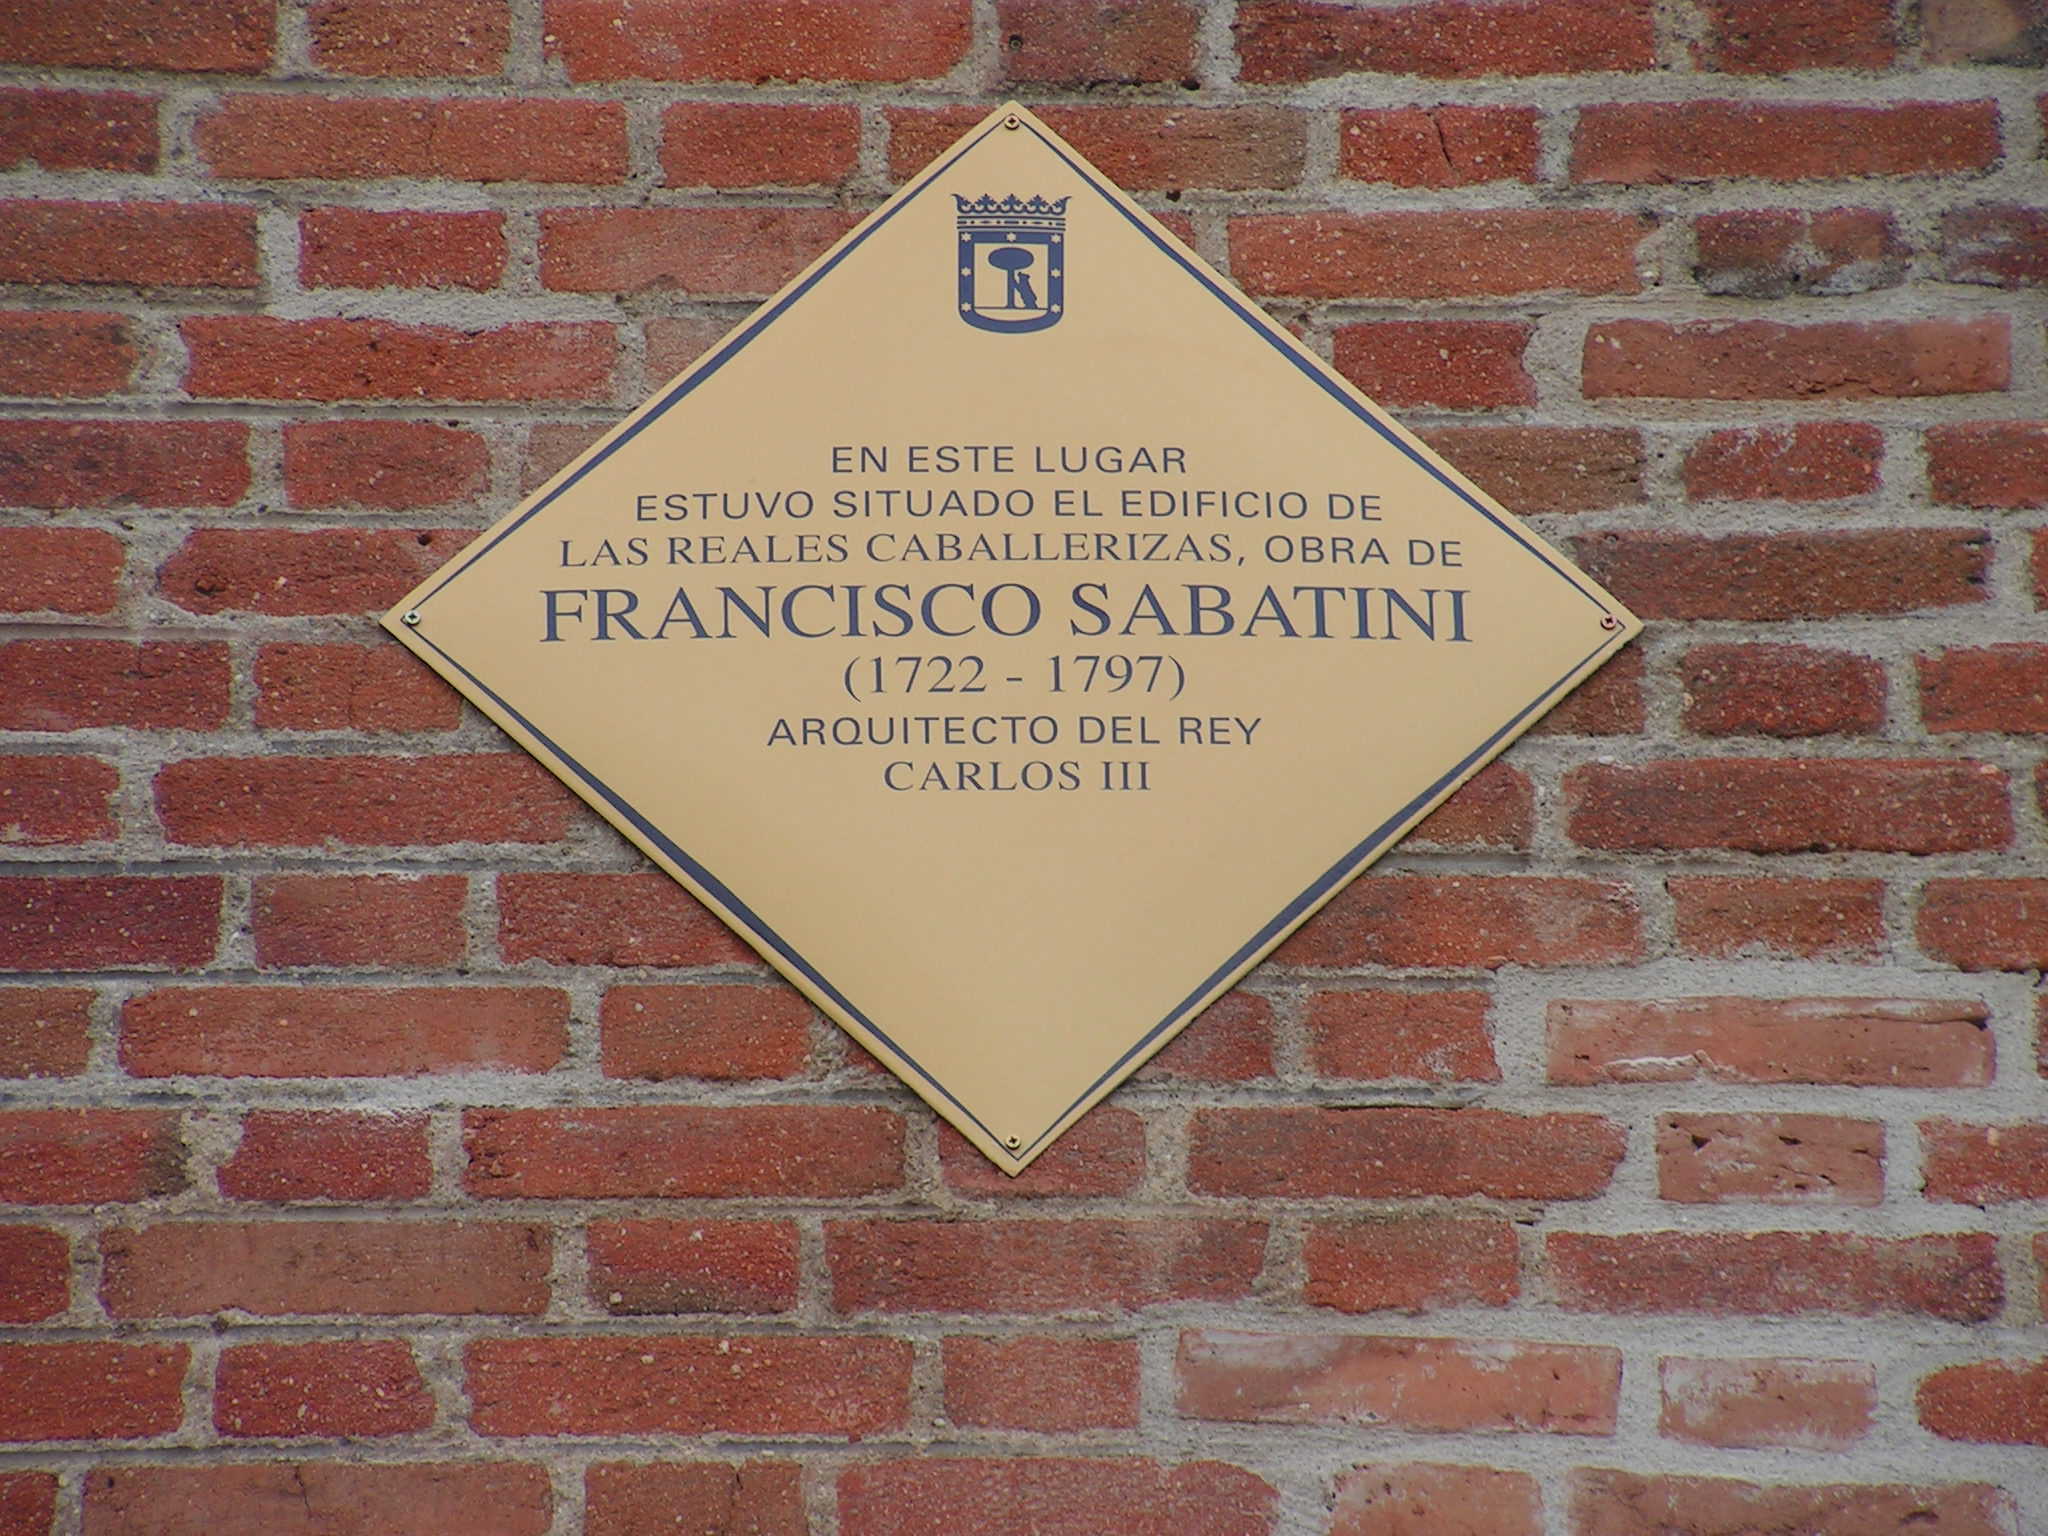 Francisco Sabatini